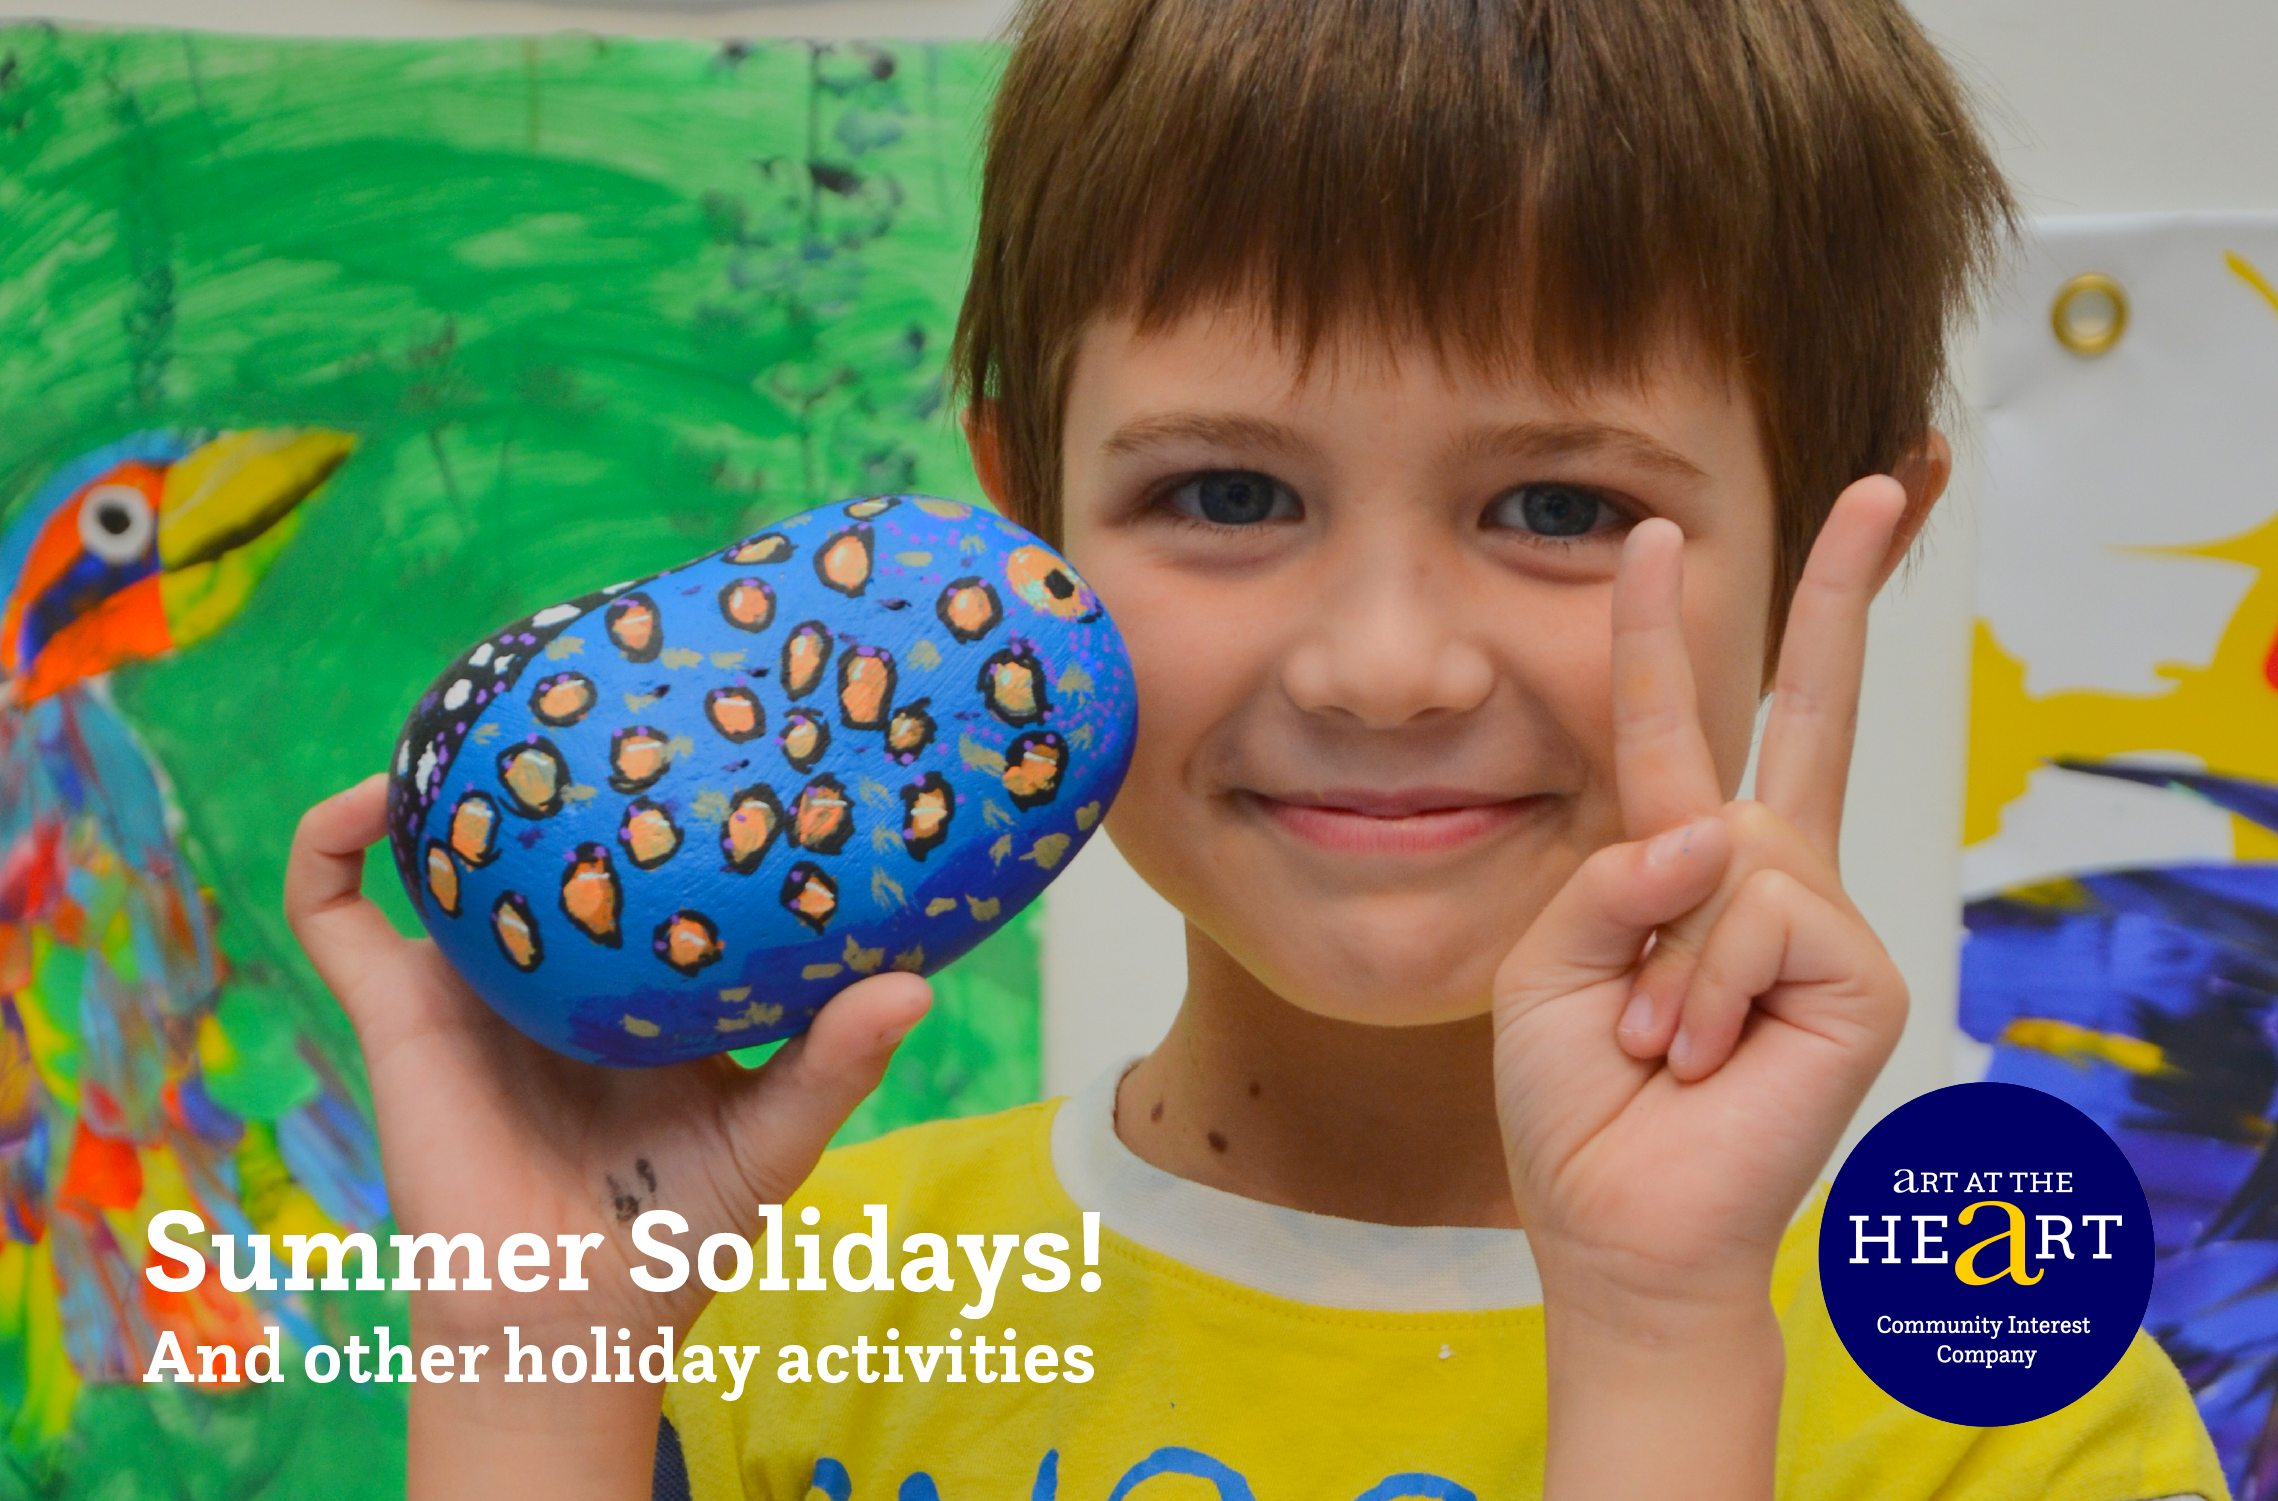 Photo of a boy holding a painted rock, advertising Art at the Heart's holiday programme